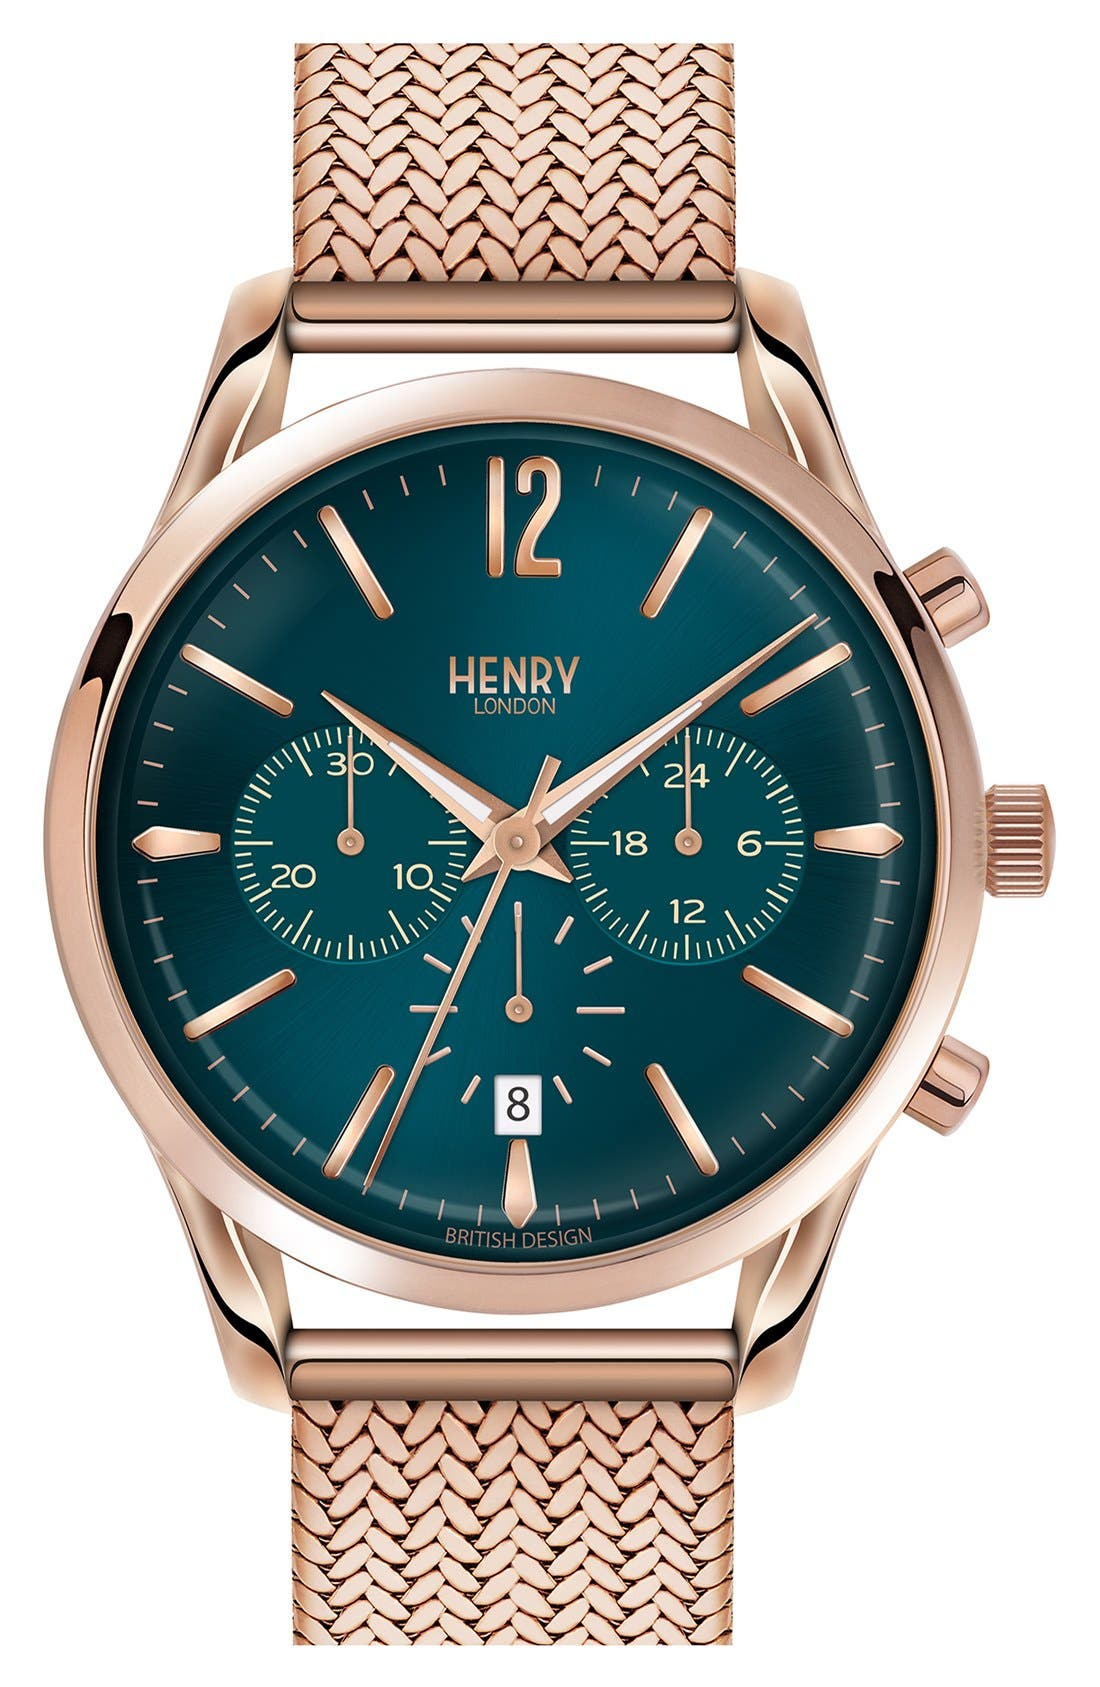 Henry London 'Stratford' Chronograph Mesh Strap Watch, 38mm